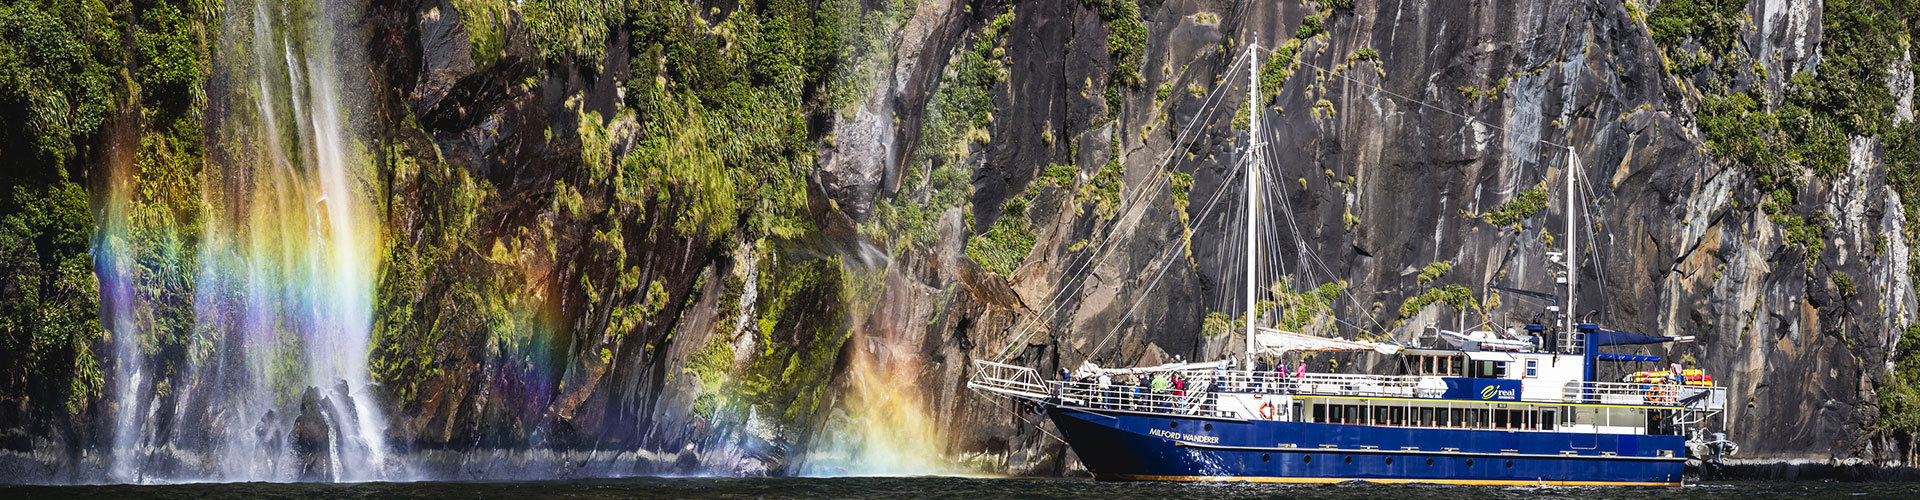 Cruise boat on Milford Sound underneath waterfall